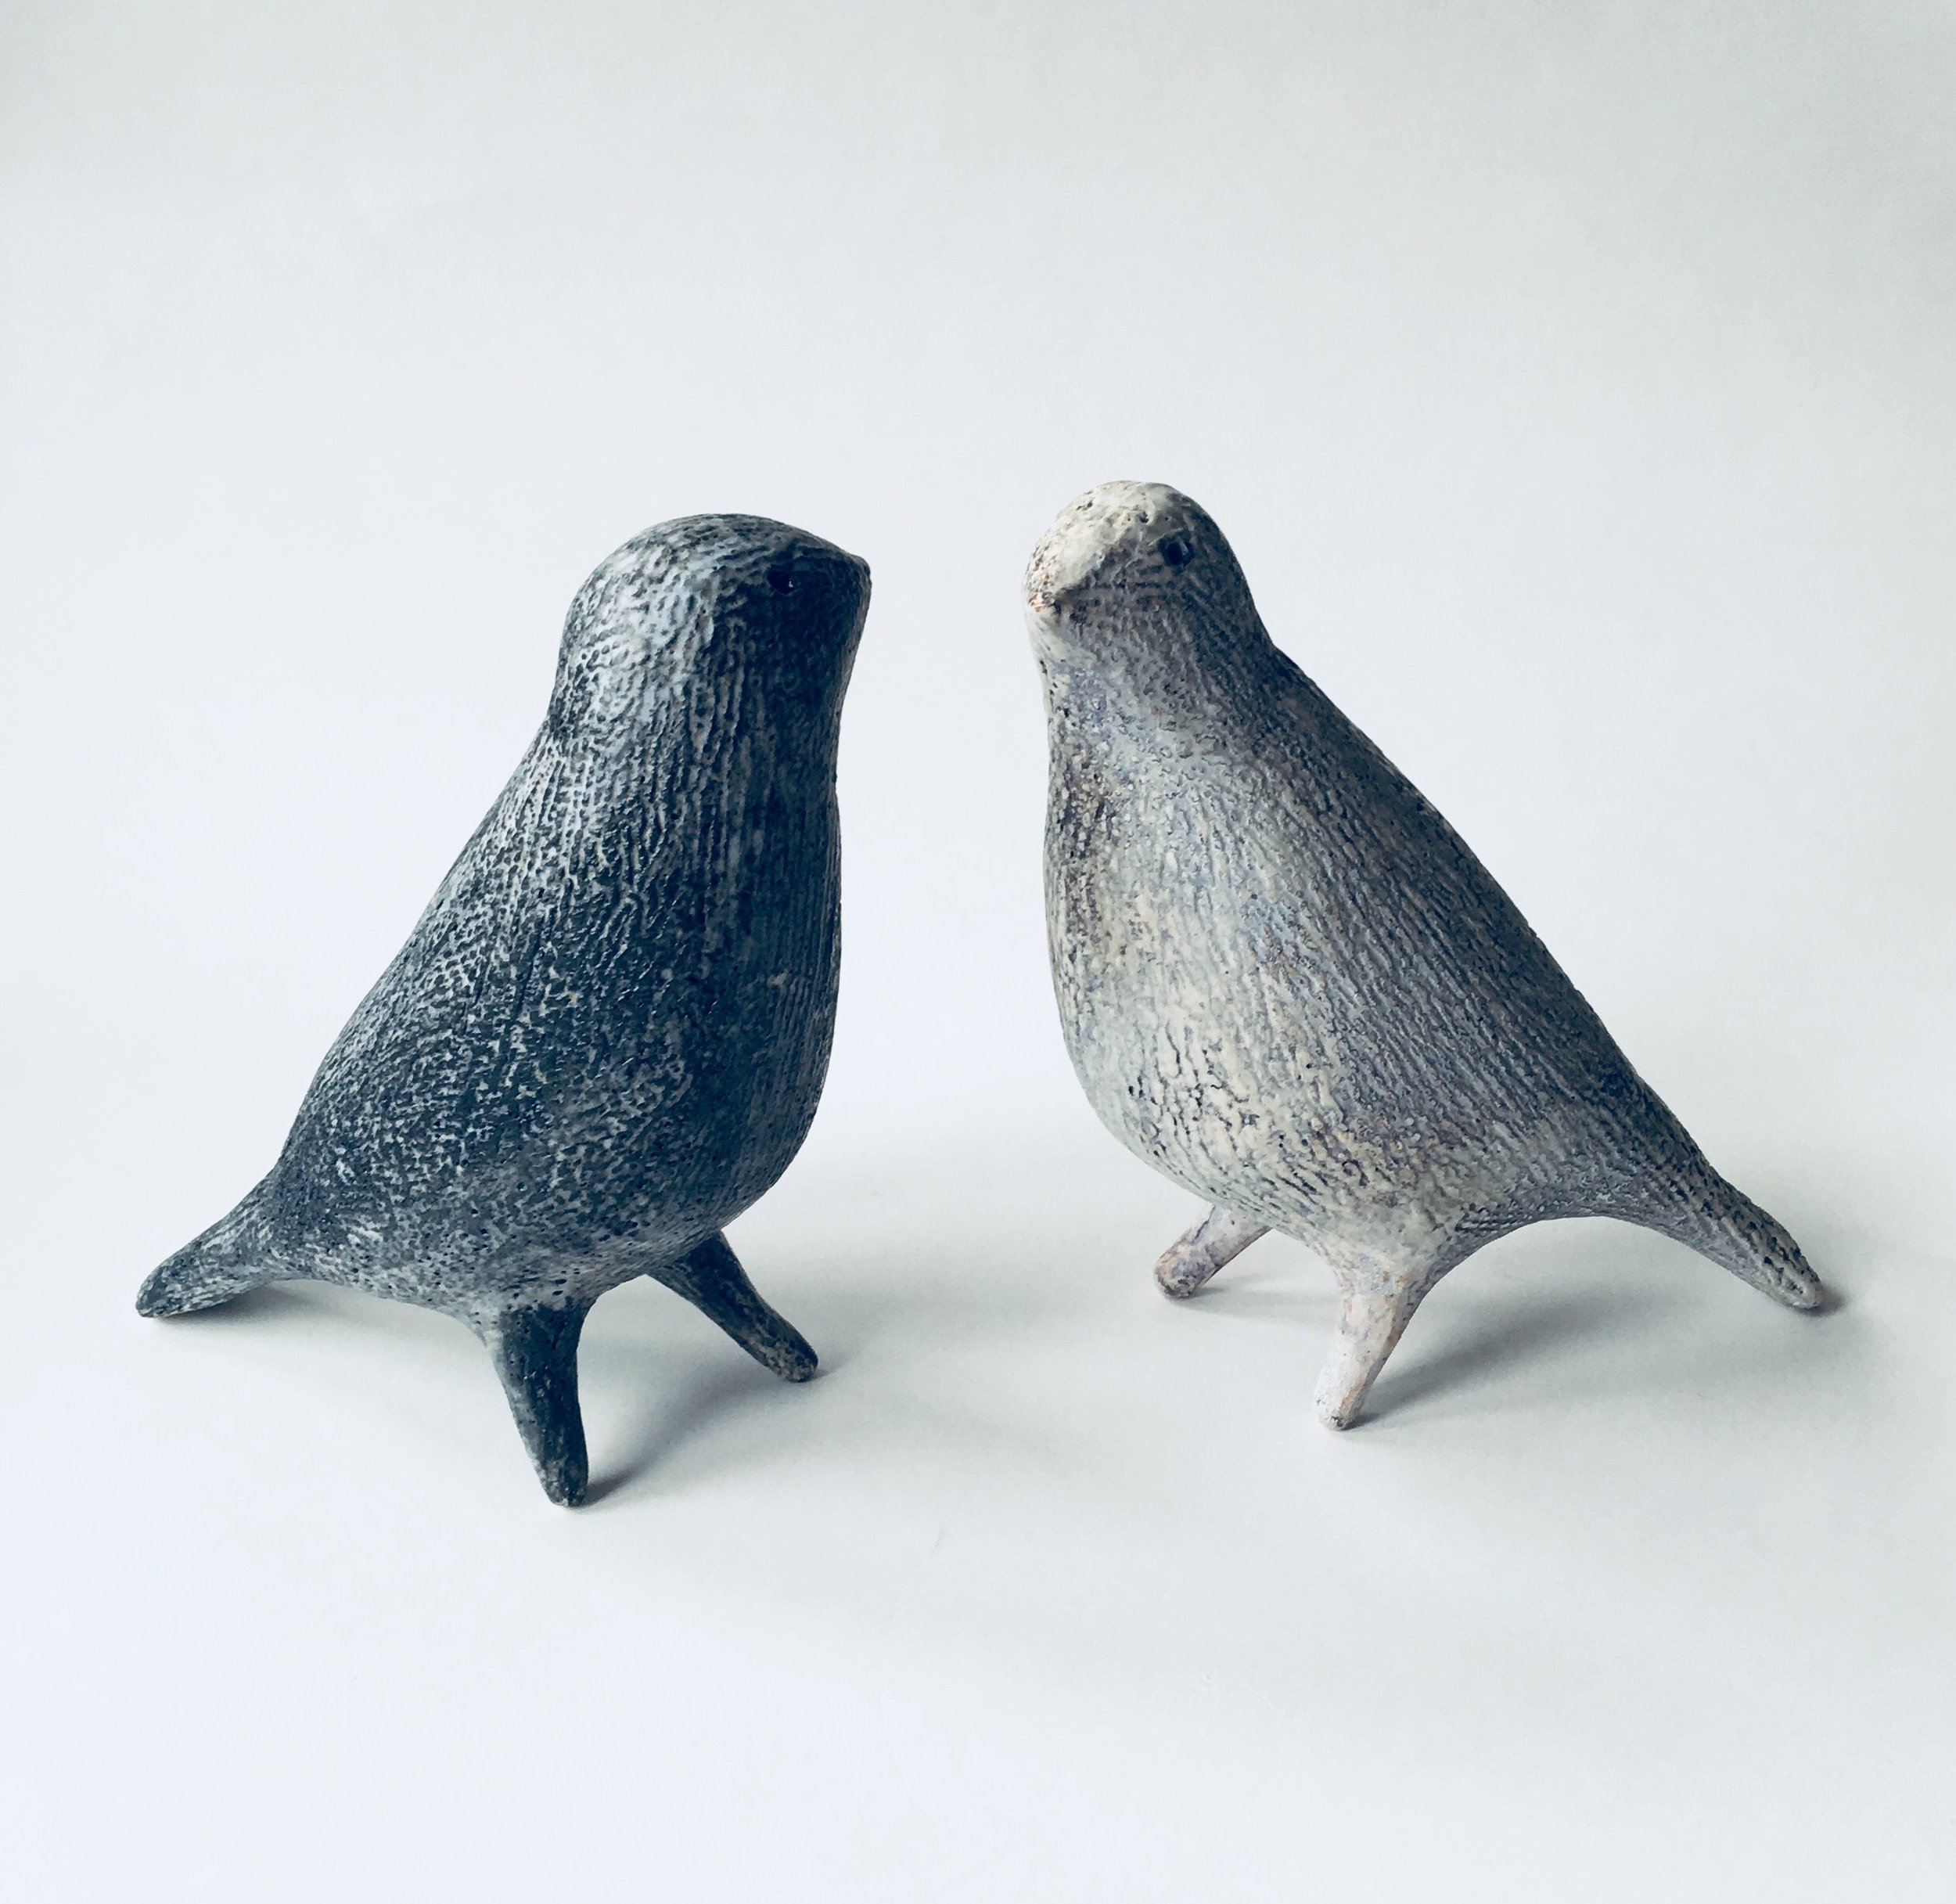 Artist: Julie Nelson  Title: Small Ponti Birds - Slate and Snow  Size: H 15cm x W 6cm x L 13cm  Medium: Ceramic  Price: £175 each